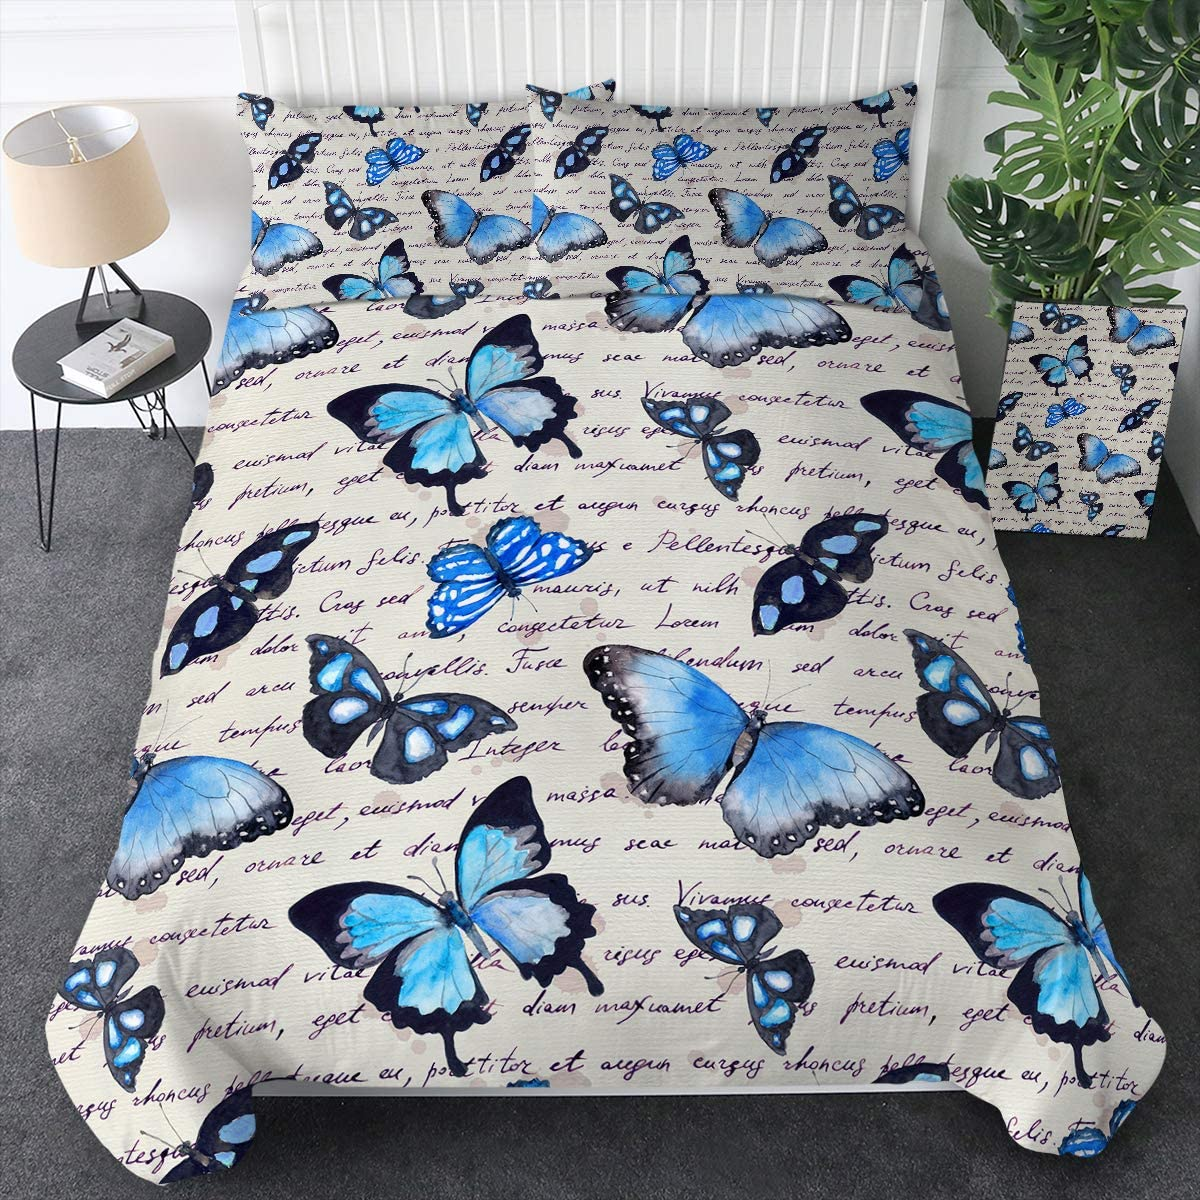 Sleepwish Butterfly Bedding Flying Dreams 3 Pieces Super Soft Butterfly Collection Duvet Cover Set Full